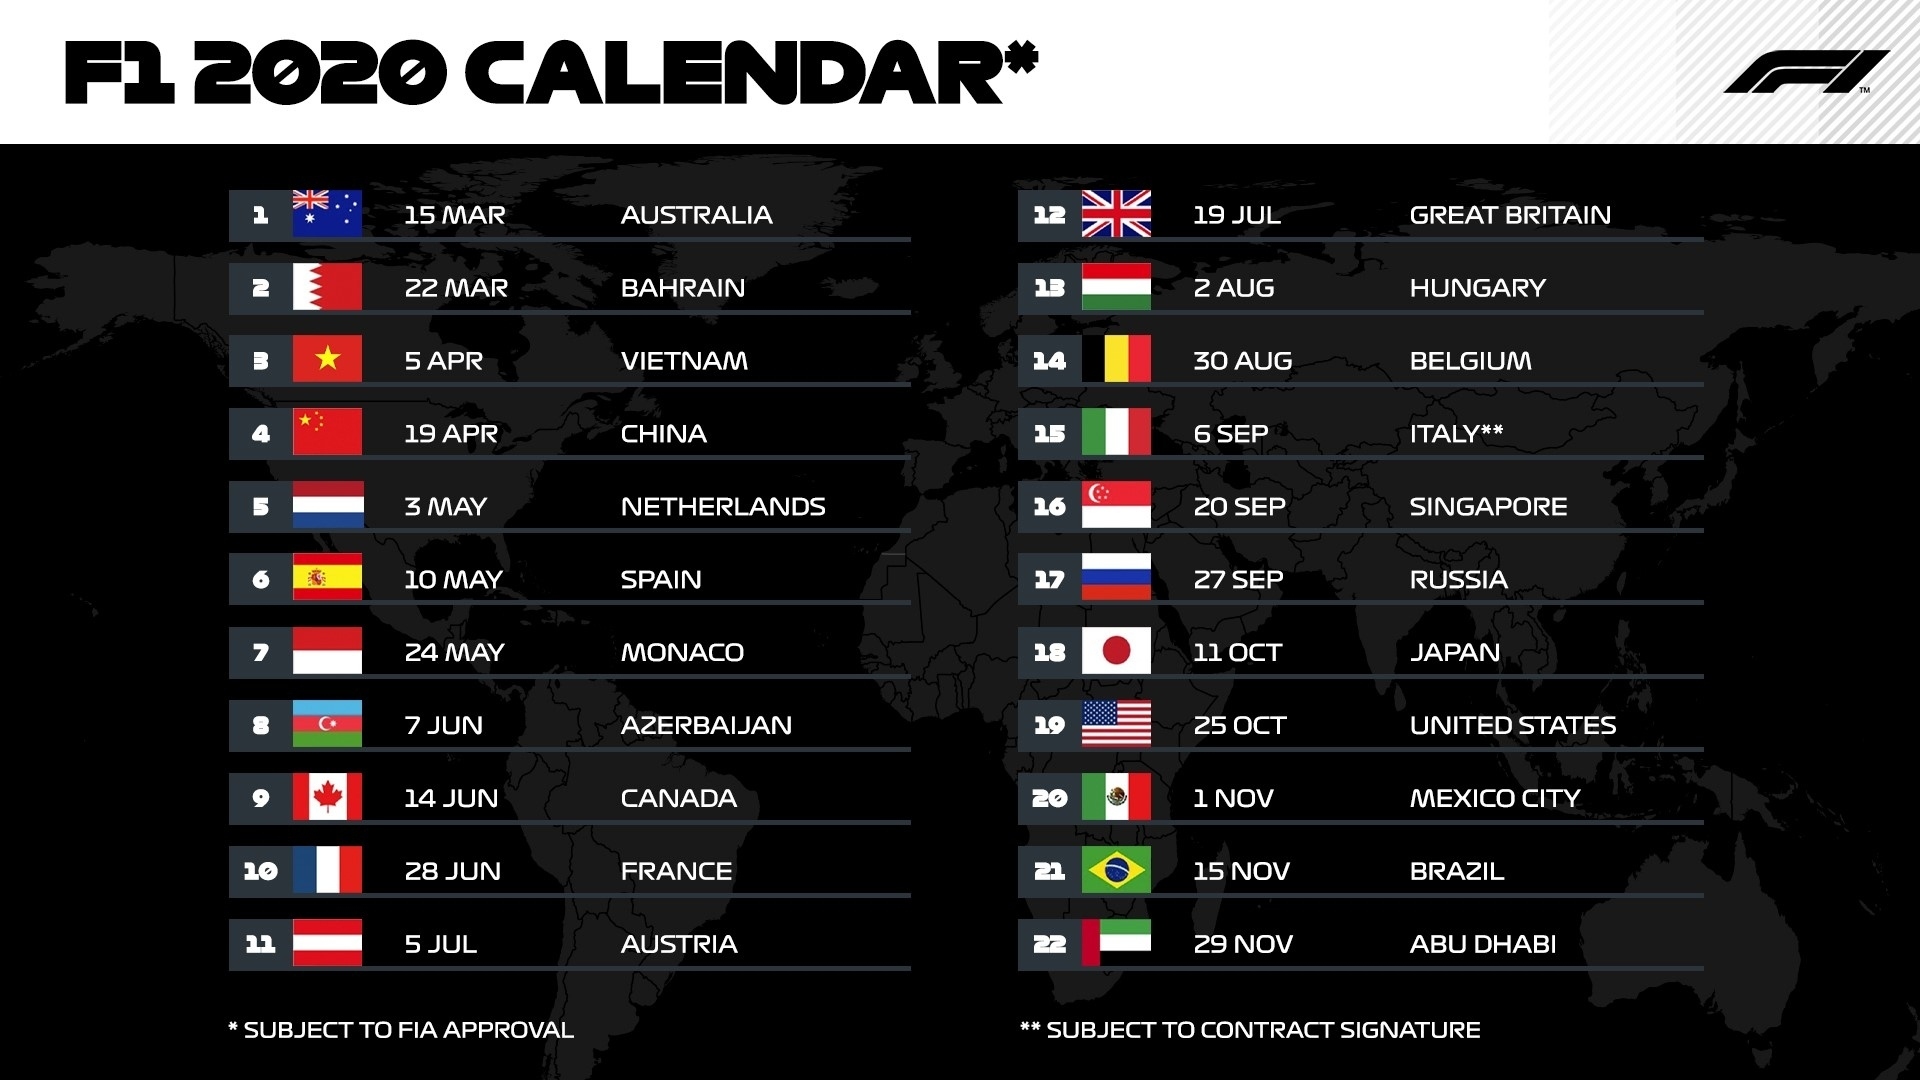 F1 Calendar 2020 - Enjoy A Record-Breaking 22 Races In The Printable 2020 Formula 1 Schedule